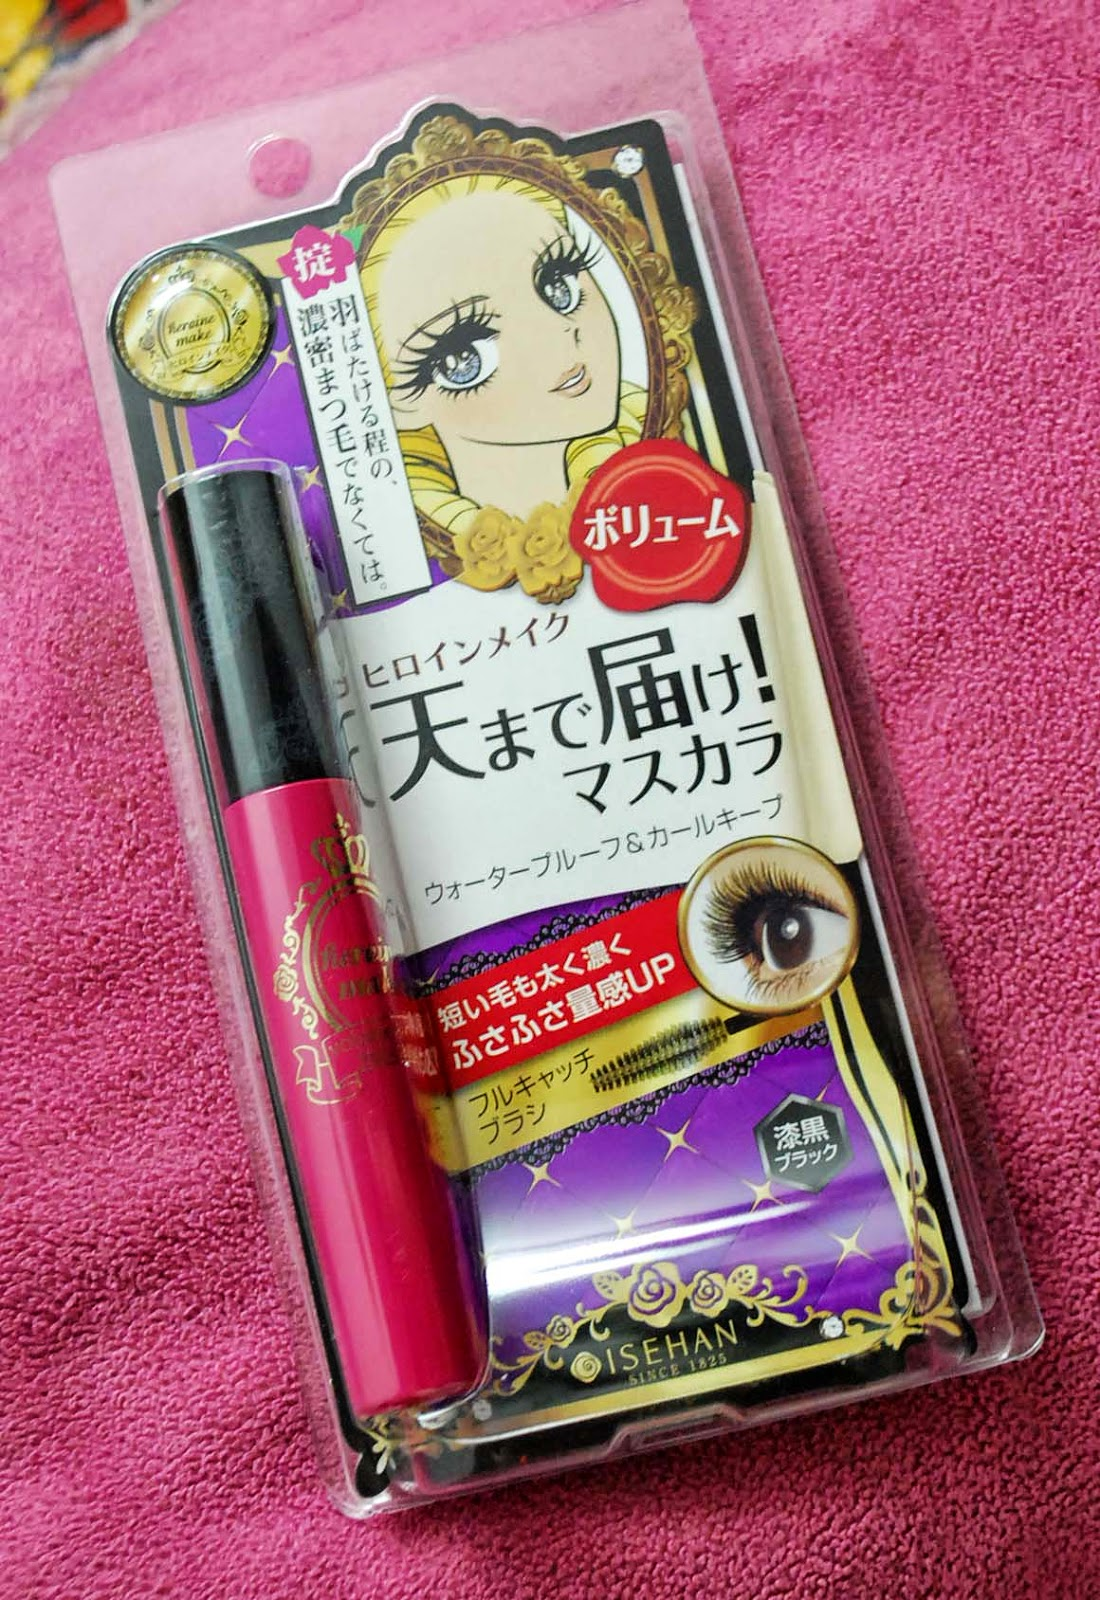 8f9f15258d6 ... mascaras but I'm always open on trying out other ones. I get super  happy when I find something really good and that's what happened when I  tried this ...